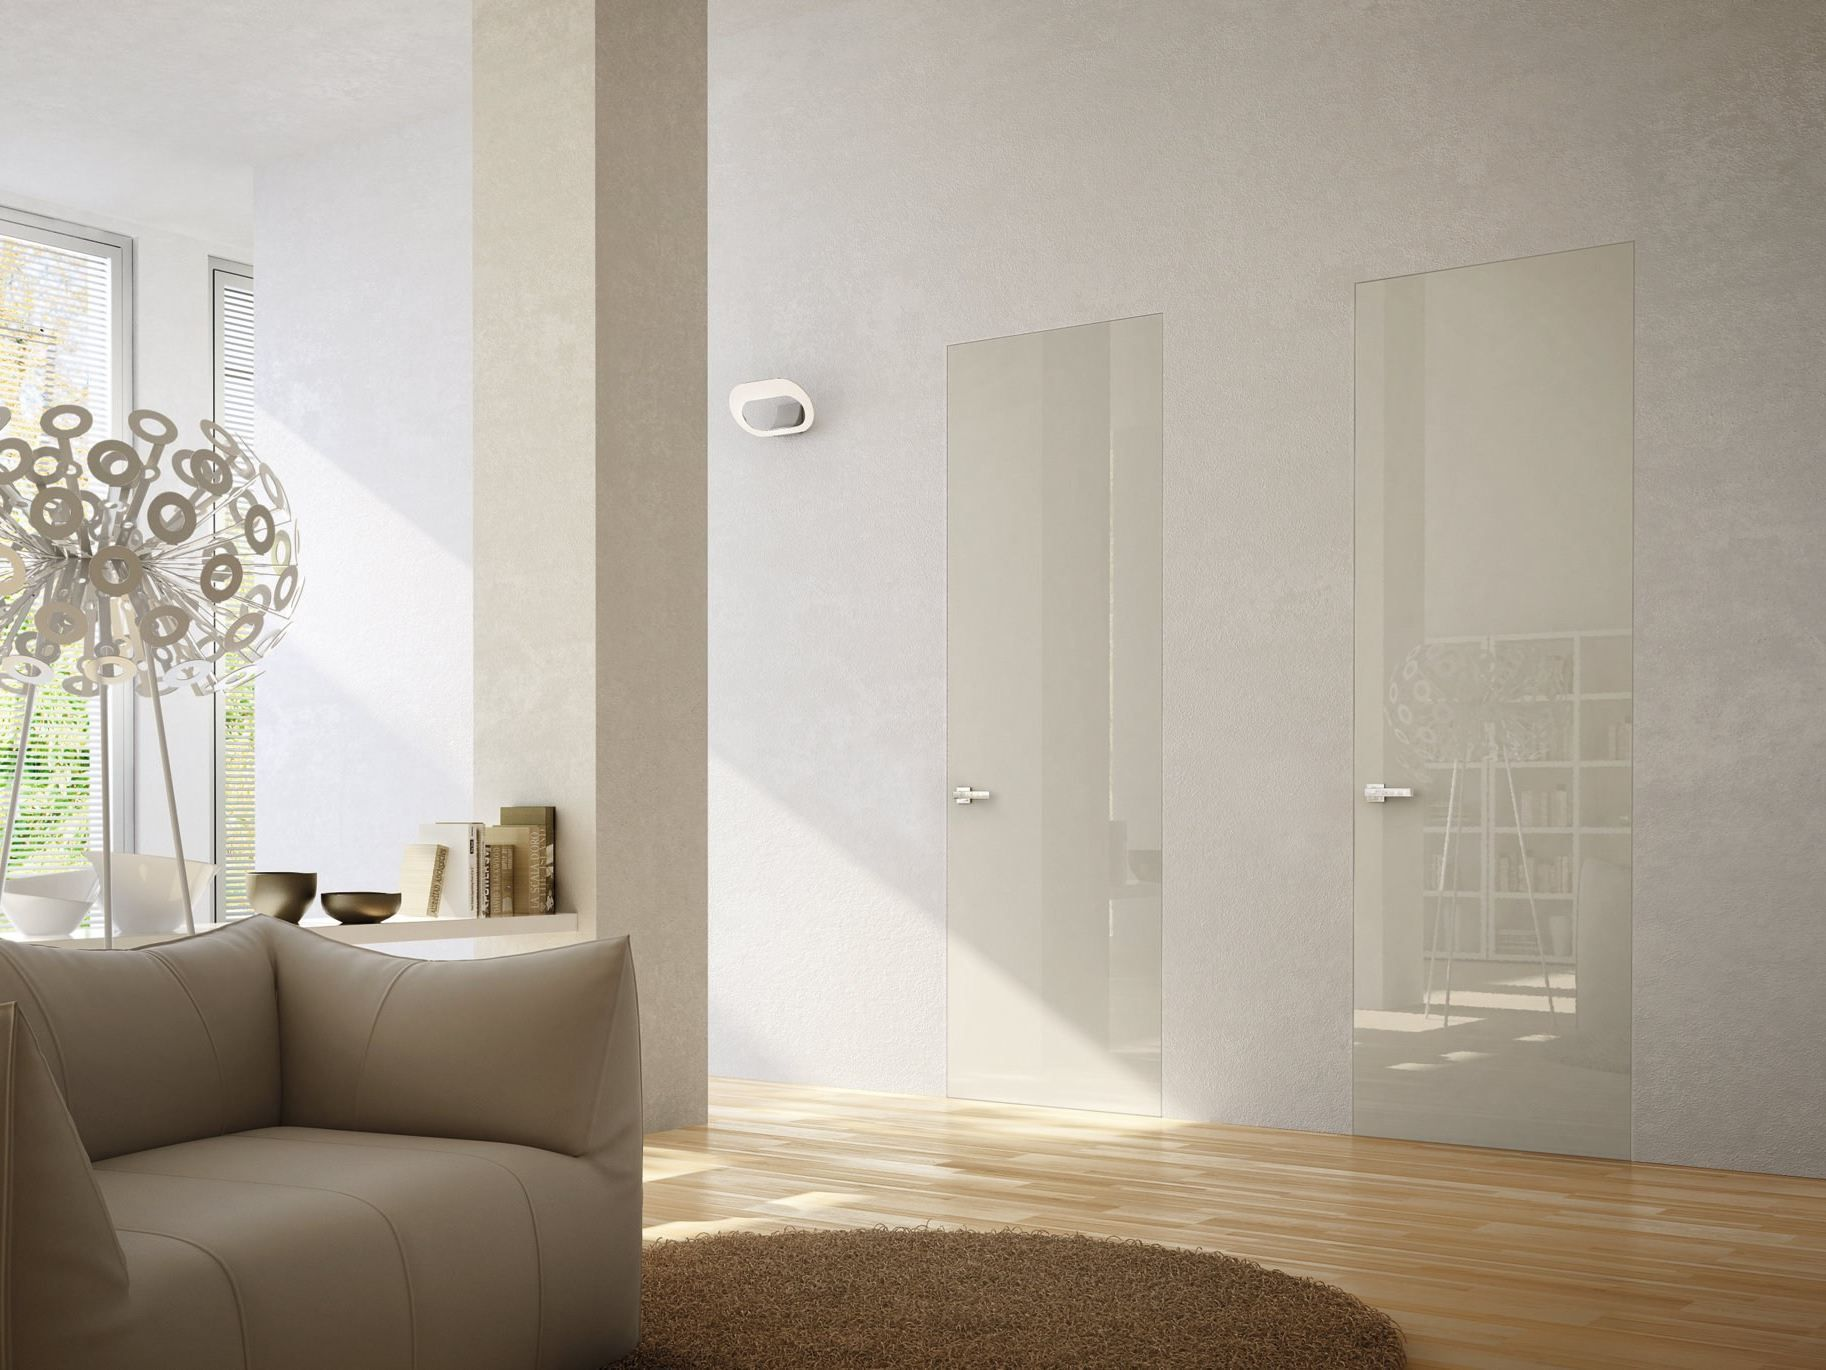 Flush to the wall PORTA A FILO MURO LEGGERA BY PIVATO | Doors ...